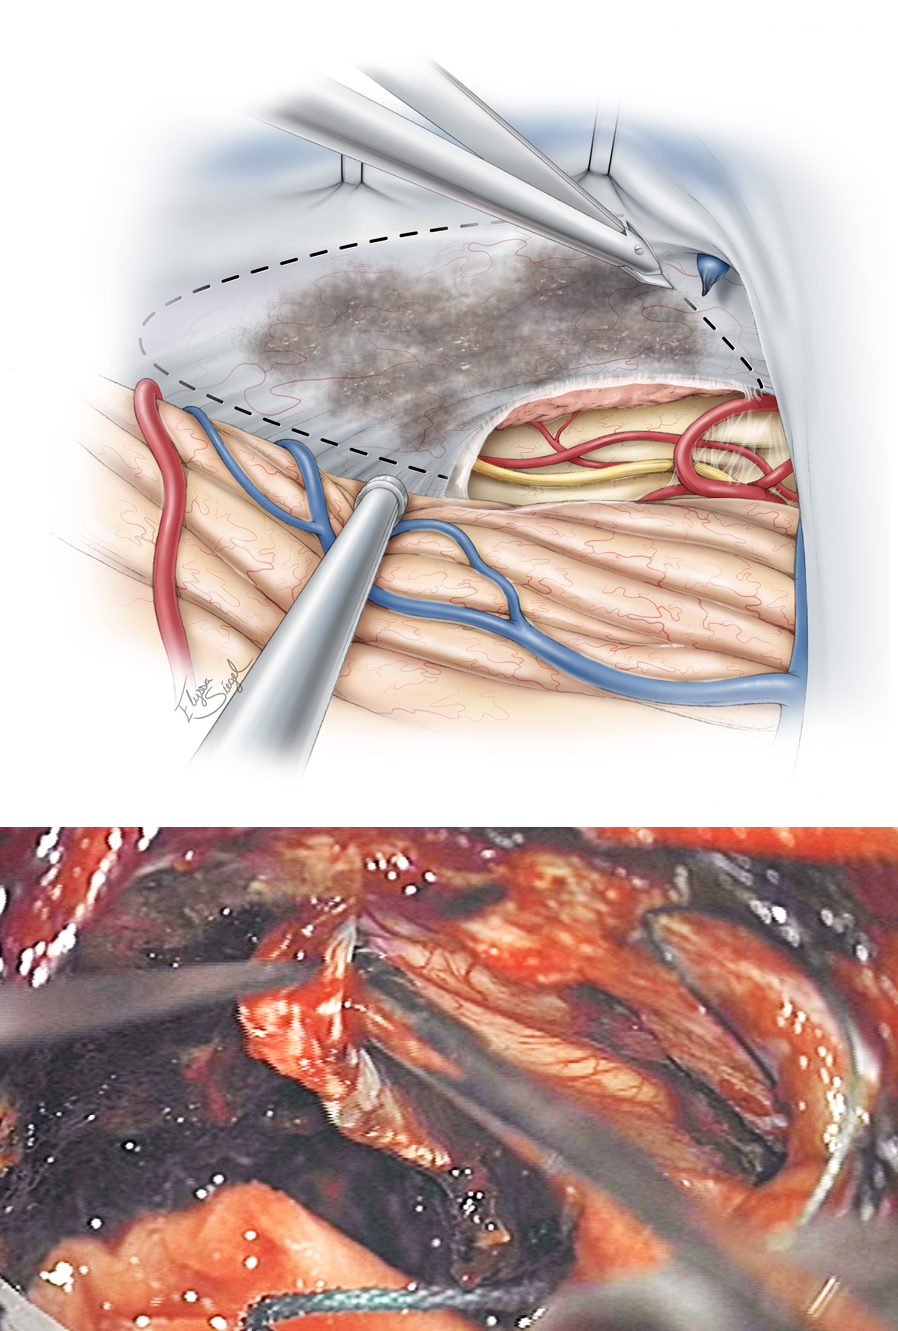 Figure 10: A generous section of the tentorium that contains the base of the tumor and spans the petrous ridge to the midline is incised while the operator identifies and preserves the trochlear nerve along the entire anterior edge of the tentorium. Occasional bridging veins draining the occipital lobe and entering the superior aspect of the tentorium may be sacrificed. The medial tentorial cut should preserve the straight sinus and its tributaries. Venous lakes may be present, and venous bleeding through the leaflets of the tentorium should be controlled using thrombin-soaked Gelfoam packing. Bipolar cauterization will exacerbate the bleeding by shrinking and tearing the tentorial edges.